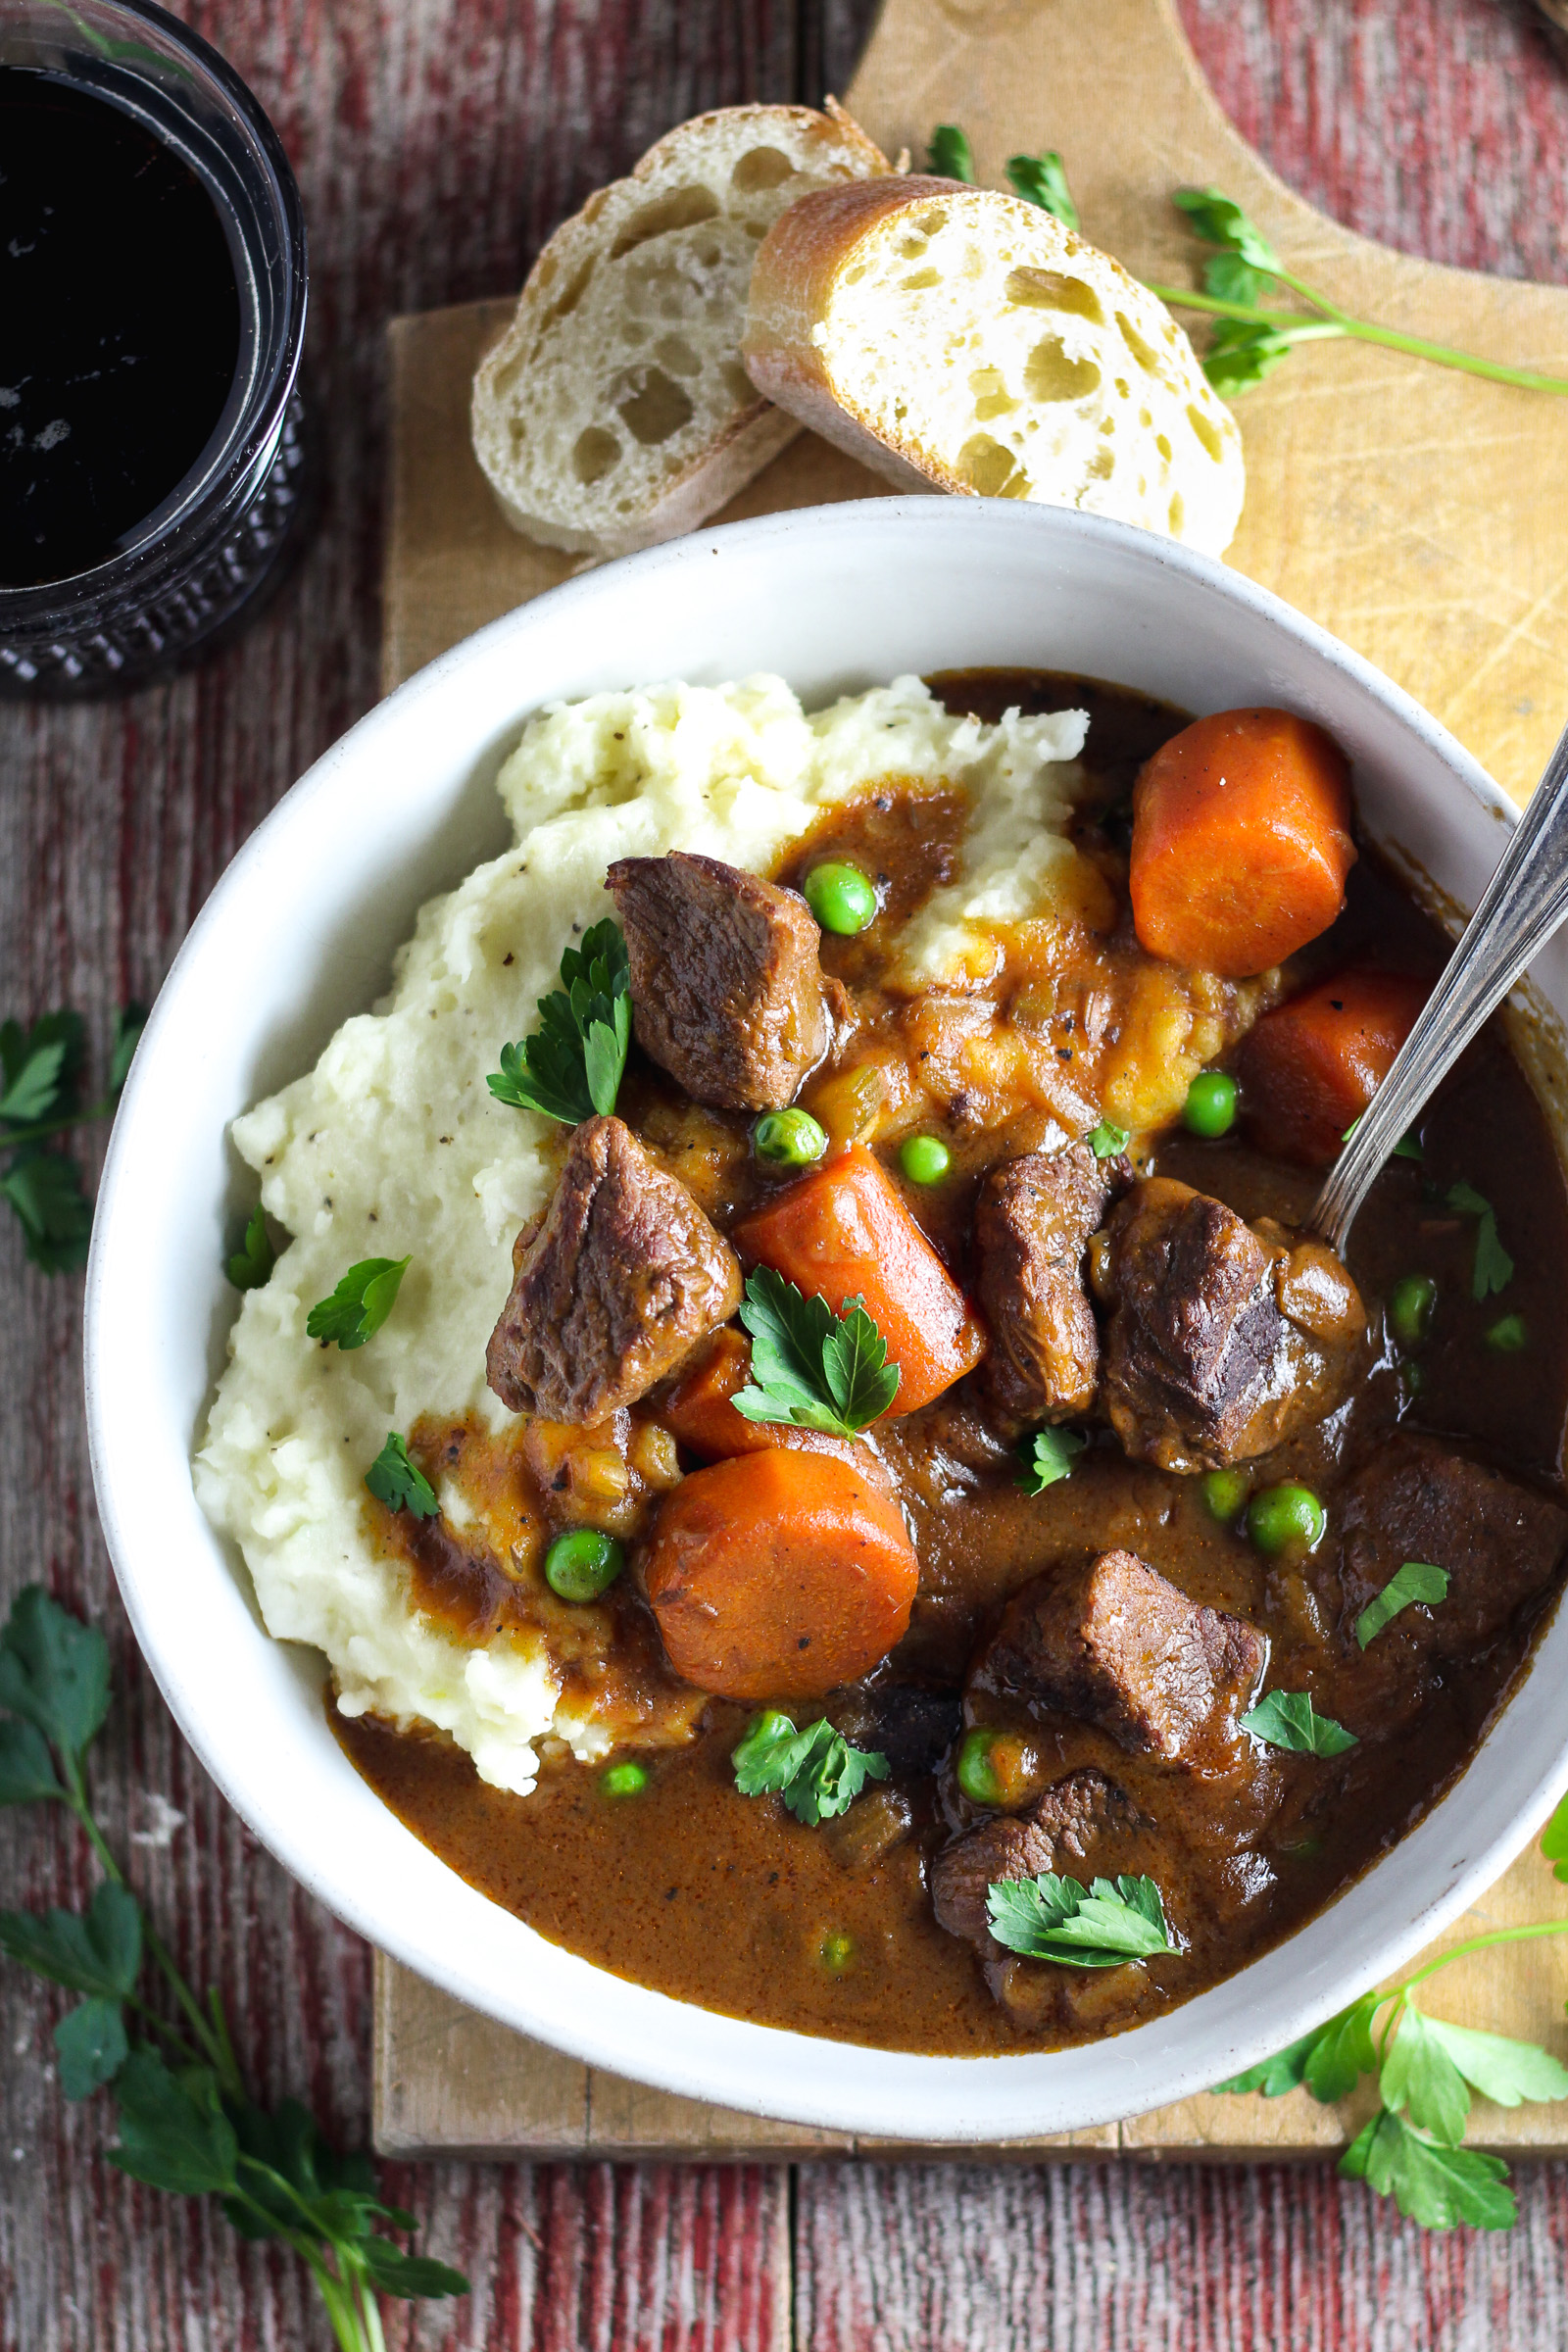 Insanely tender, fall-apart beef, carrots and peas smothered in rich gravy made with Jameson whiskey and Guinness beer. This stew packs incredible flavor and is served over creamy garlic mashed potatoes, making it the ultimate comfort food. Slow cooked in the crockpot, it's easy to make and perfect for feeding a crowd on St. Patrick's Day!